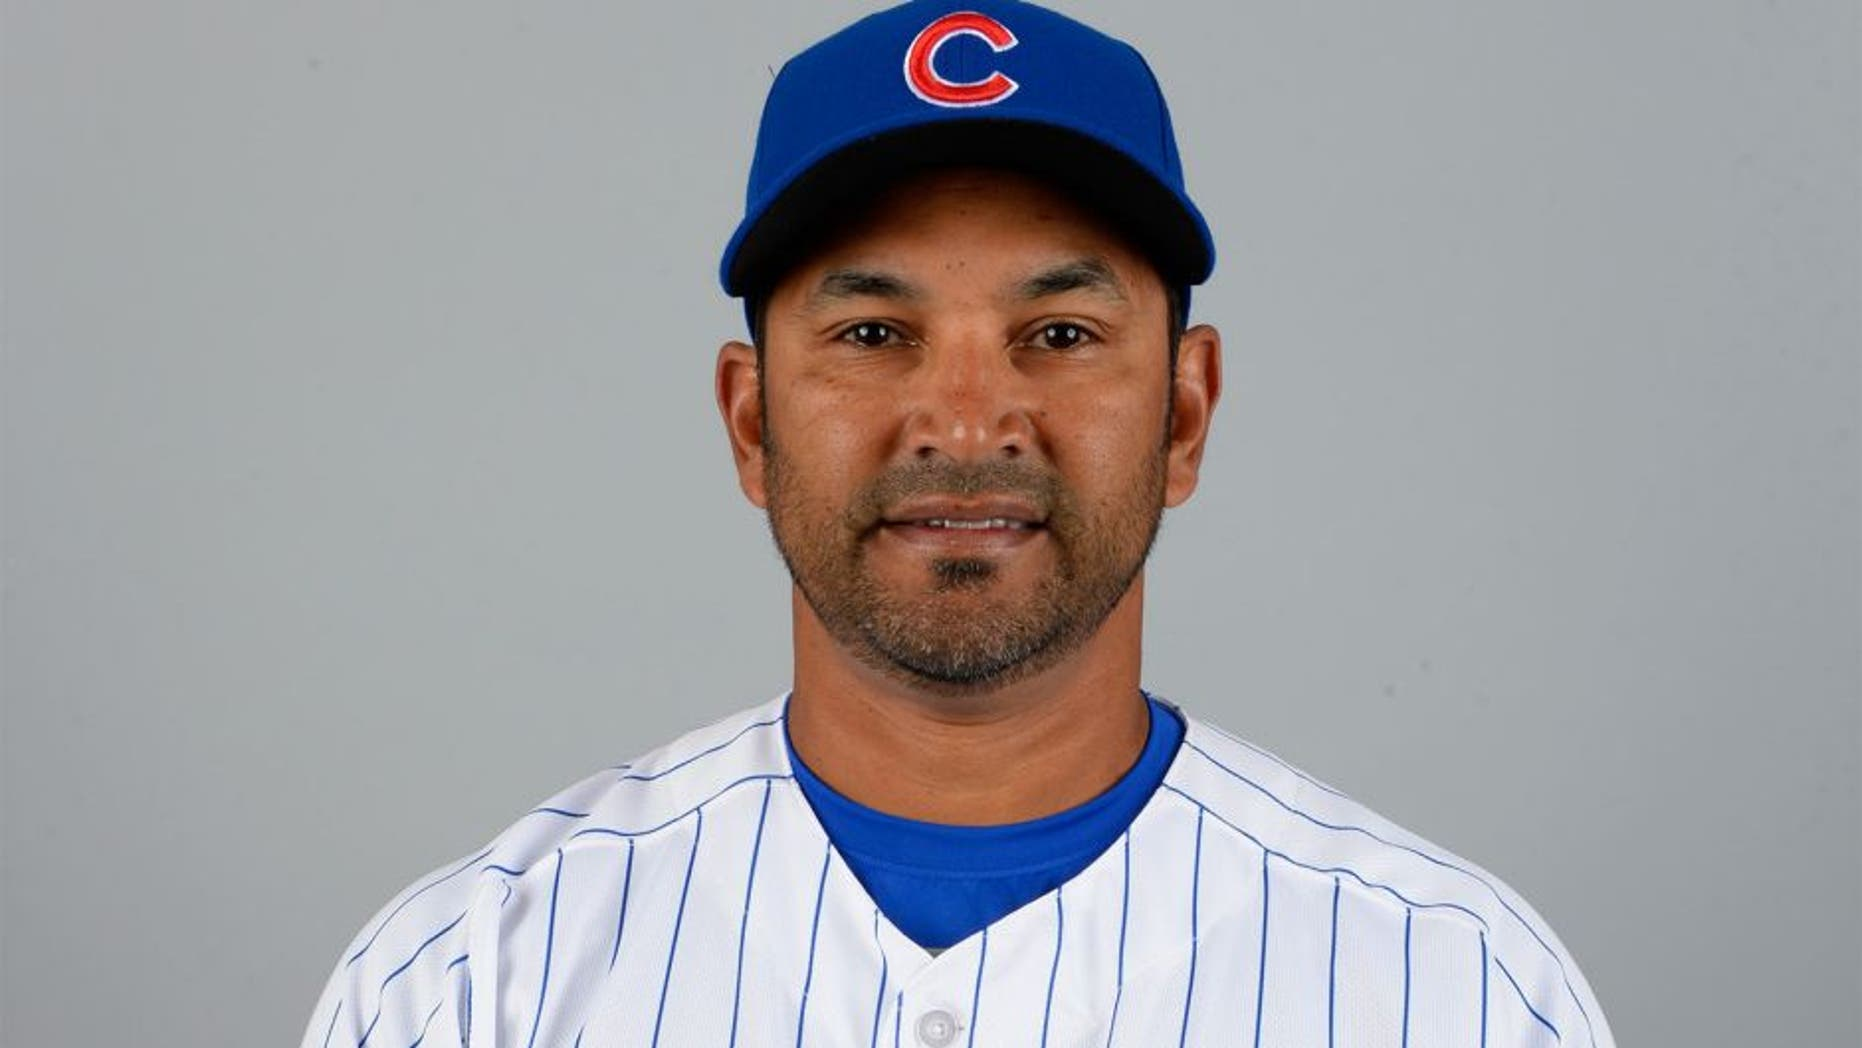 MESA, AZ - MARCH 2: Bench coach Dave Martinez #4 of the Chicago Cubs poses during Photo Day on Monday, March 2, 2015 at Sloan Park in Mesa, Arizona. (Photo by Ron Vesely/MLB Photos via Getty Images)